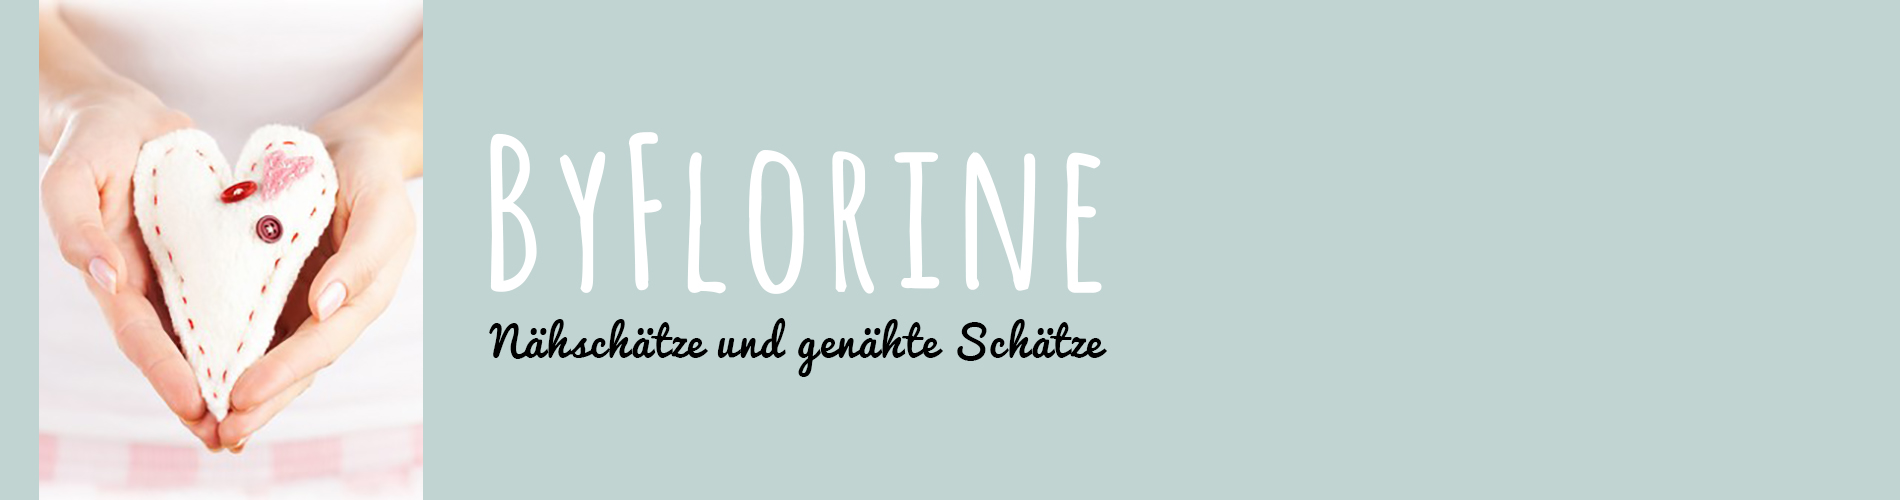 byFlorine-Logo